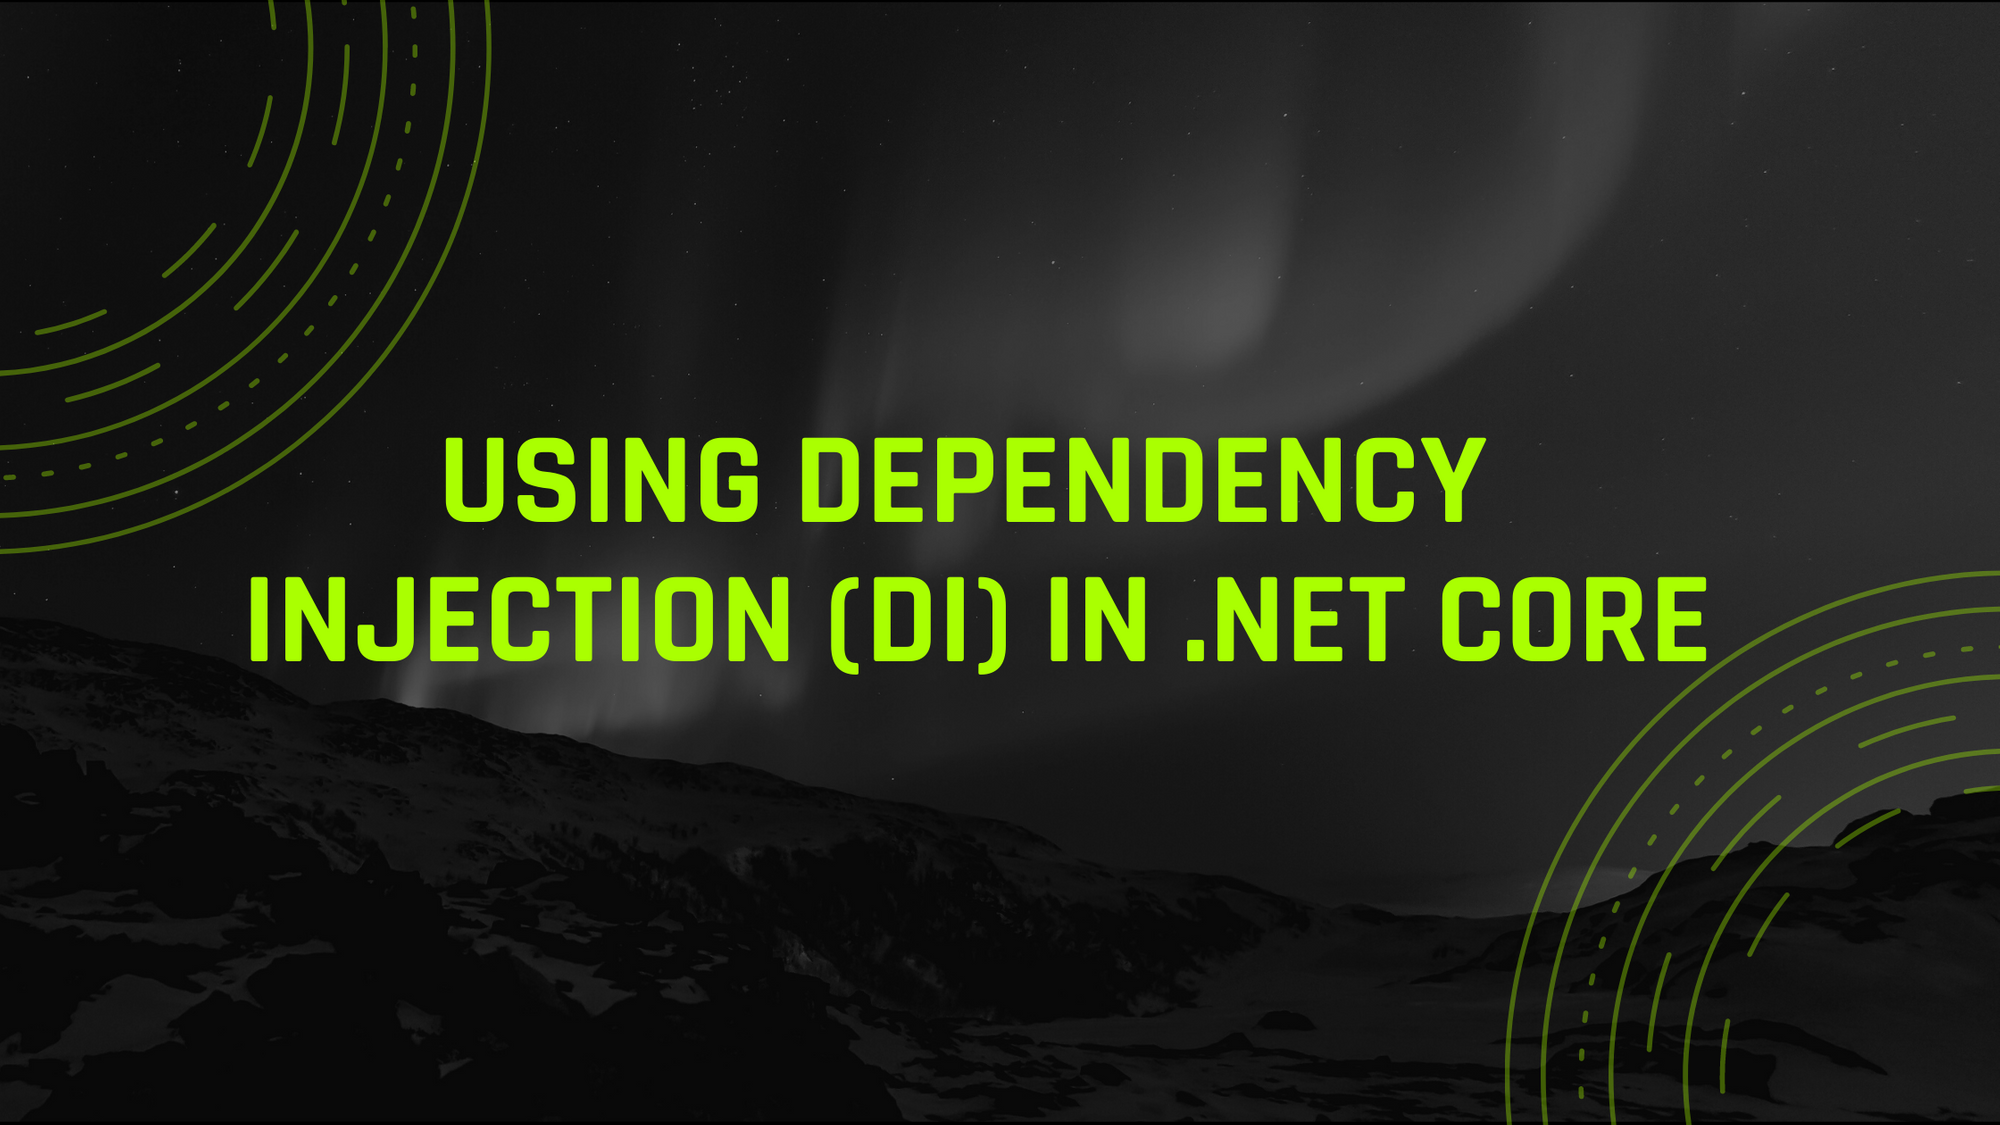 Using Dependency Injection (DI) in .NET Core